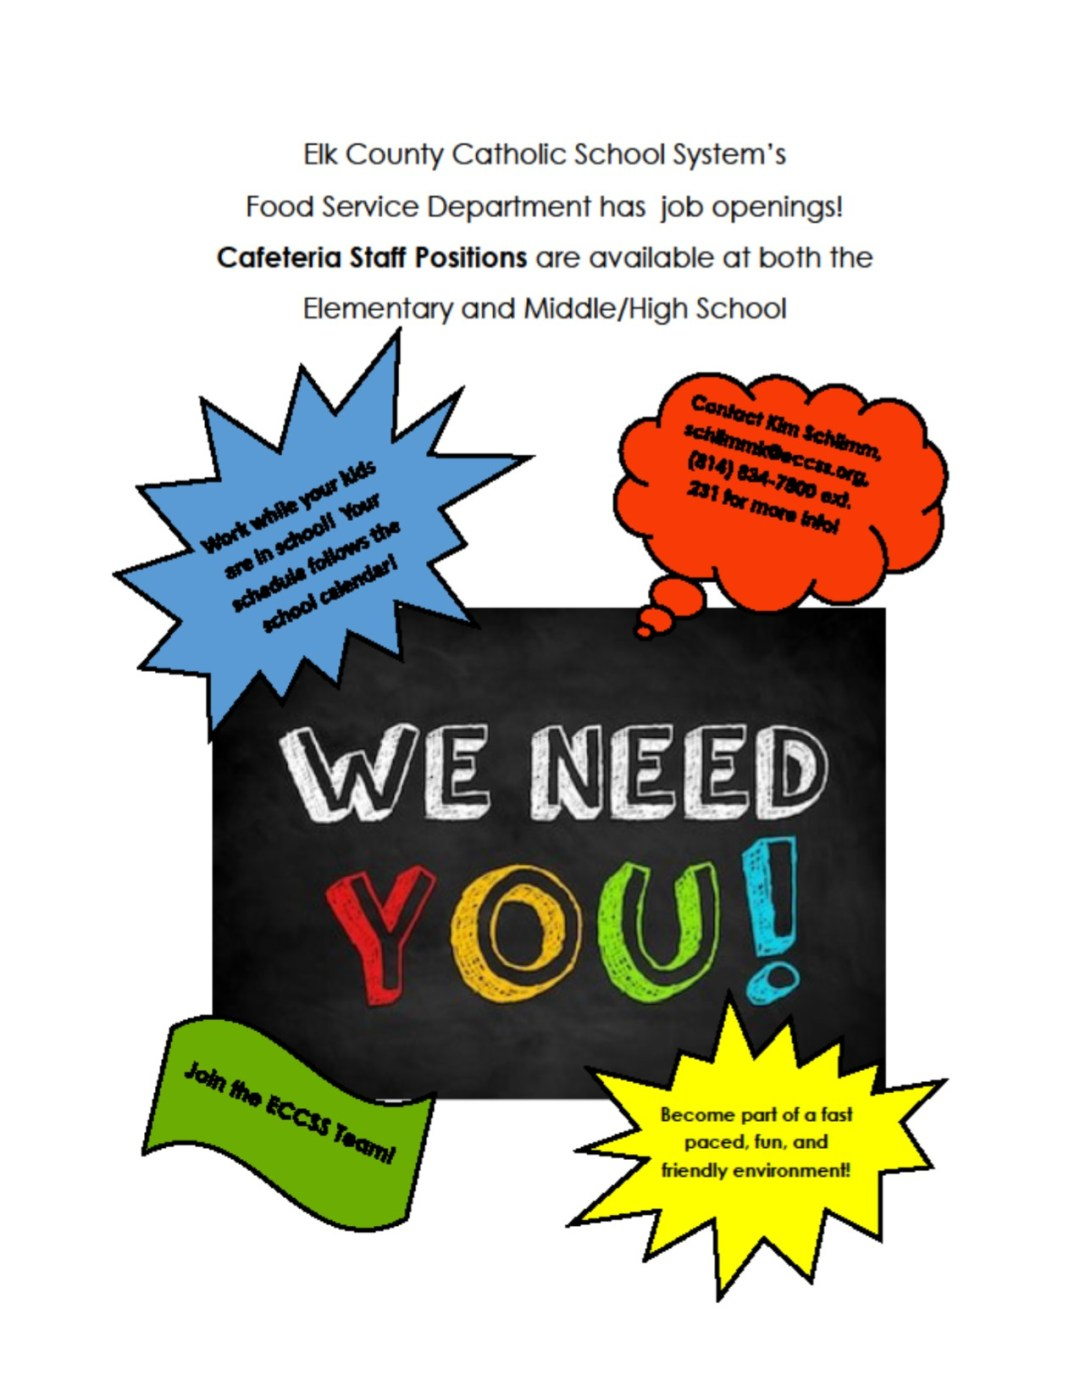 Come join the ECCSS team!